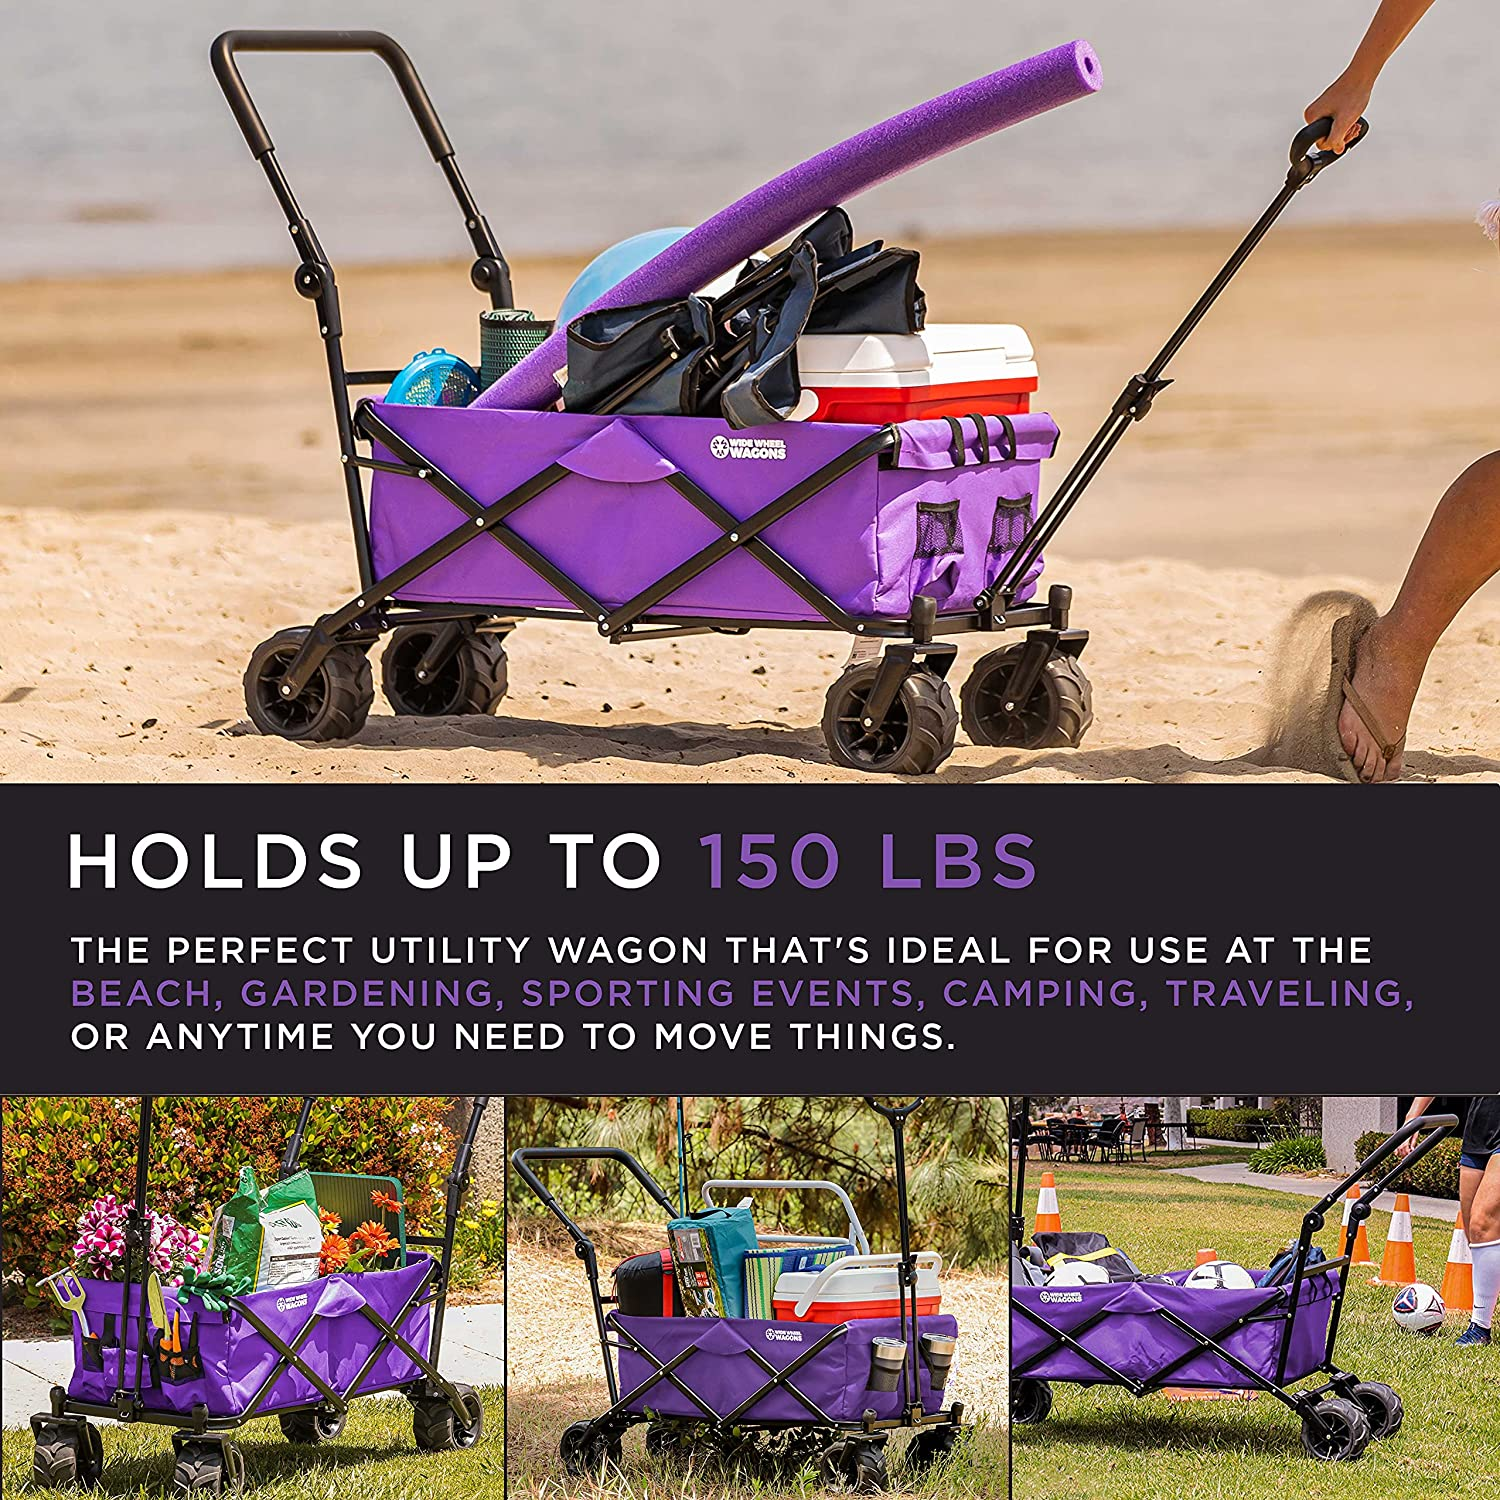 Purple Wide Wheel Wagon All-Terrain Folding Collapsible Utility Wagon with Push Bar - Portable Rolling Heavy Duty 150 Lbs Capacity Canvas Fabric Cart Buggy - Beach, Garden, Sporting Events, Park : Patio, Lawn & Garden